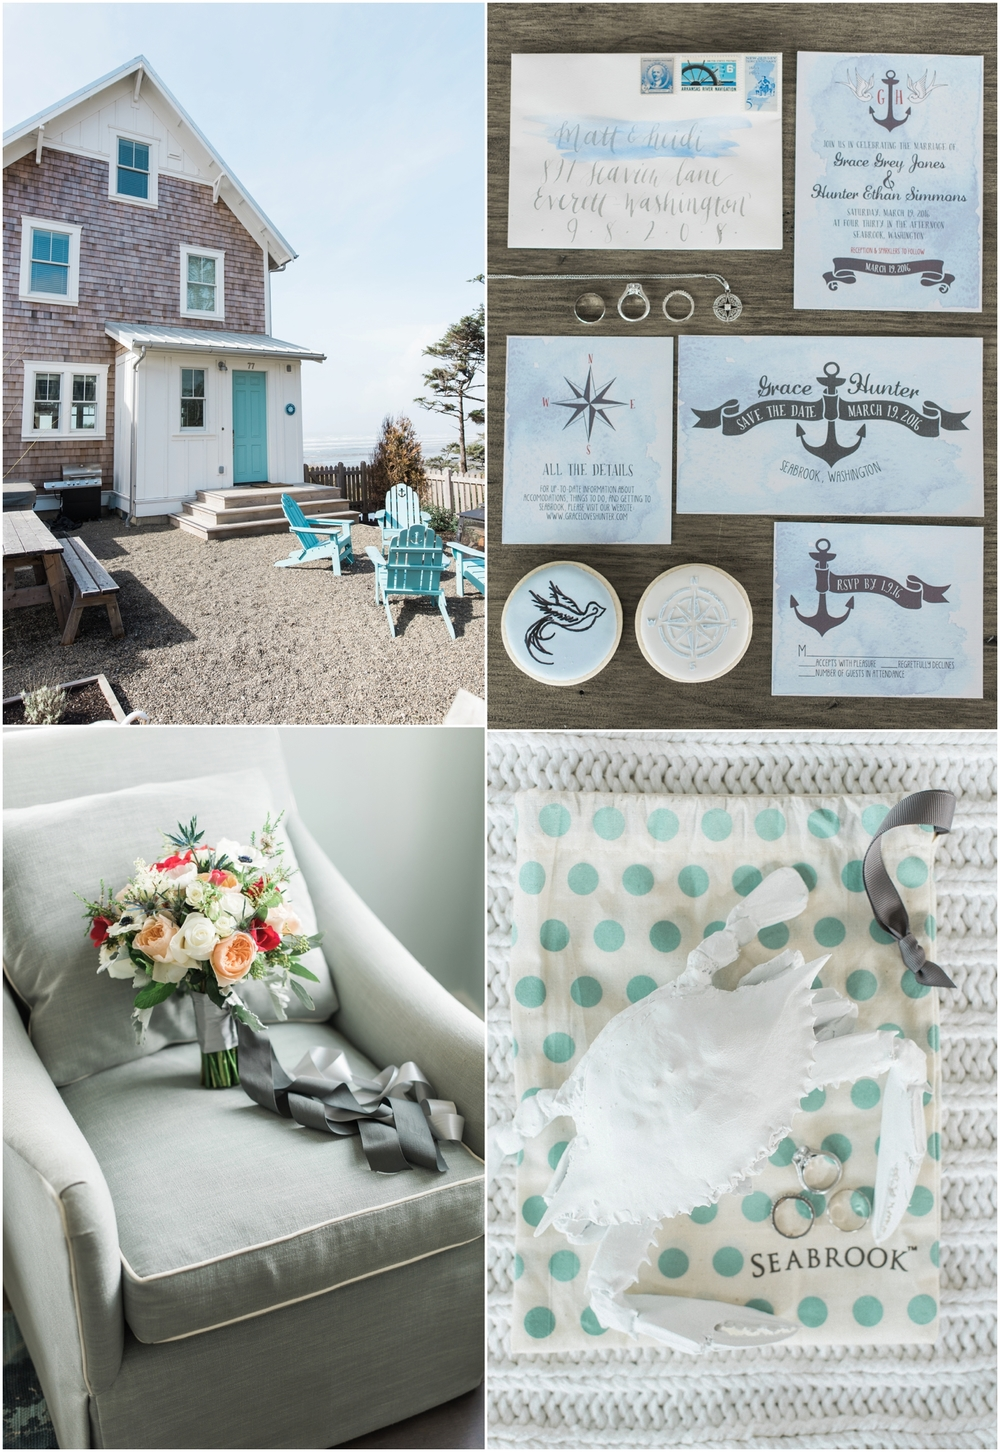 Seabrook nautical fine art wedding. Sandy Side Up Cottage.